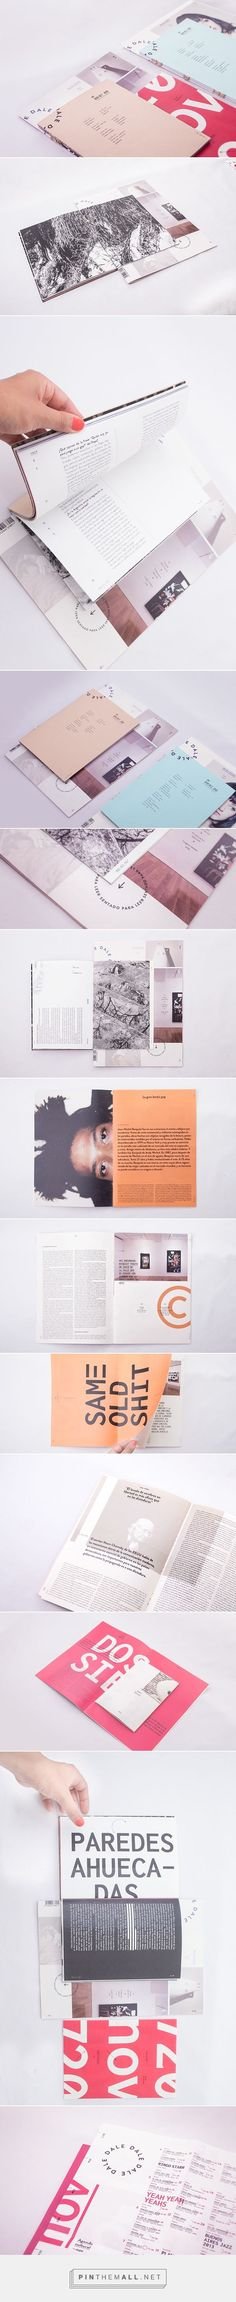 Look at the cut and layout DALE mag / by Florencia Baldini Graphic Design Layouts, Graphic Design Typography, Layout Design, Design Editorial, Editorial Layout, Design Graphique, Art Graphique, Layout Inspiration, Graphic Design Inspiration